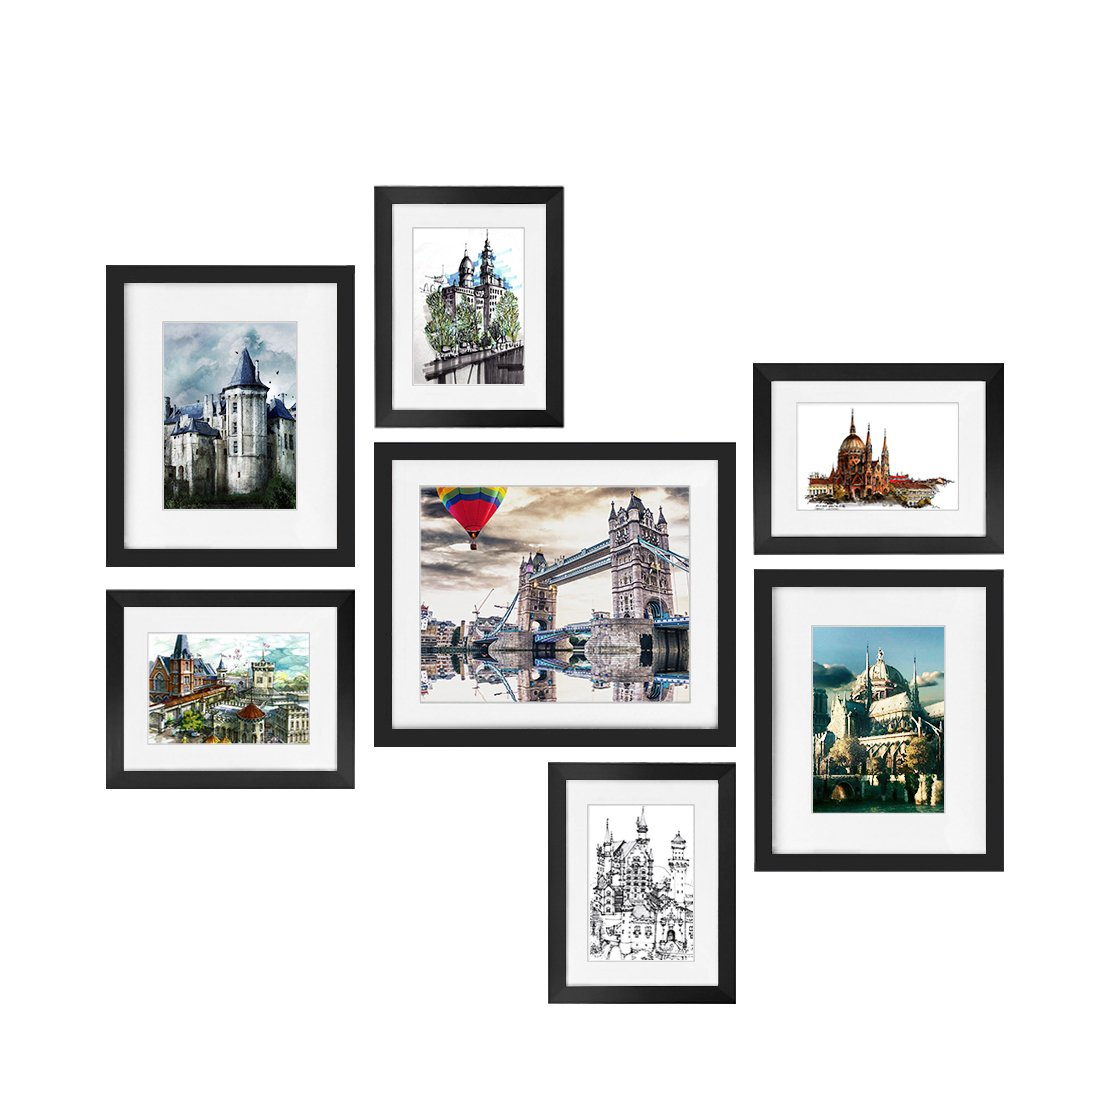 BOJIN Picture Frames Set, 7-Piece Wood Photo Frames, One 10X12 (8X10 matted), Two 8x10 ( 5x7 matted) Four 6x8 (4x6 matted) for Wall Corridor Family Room Art Decoration (Black)